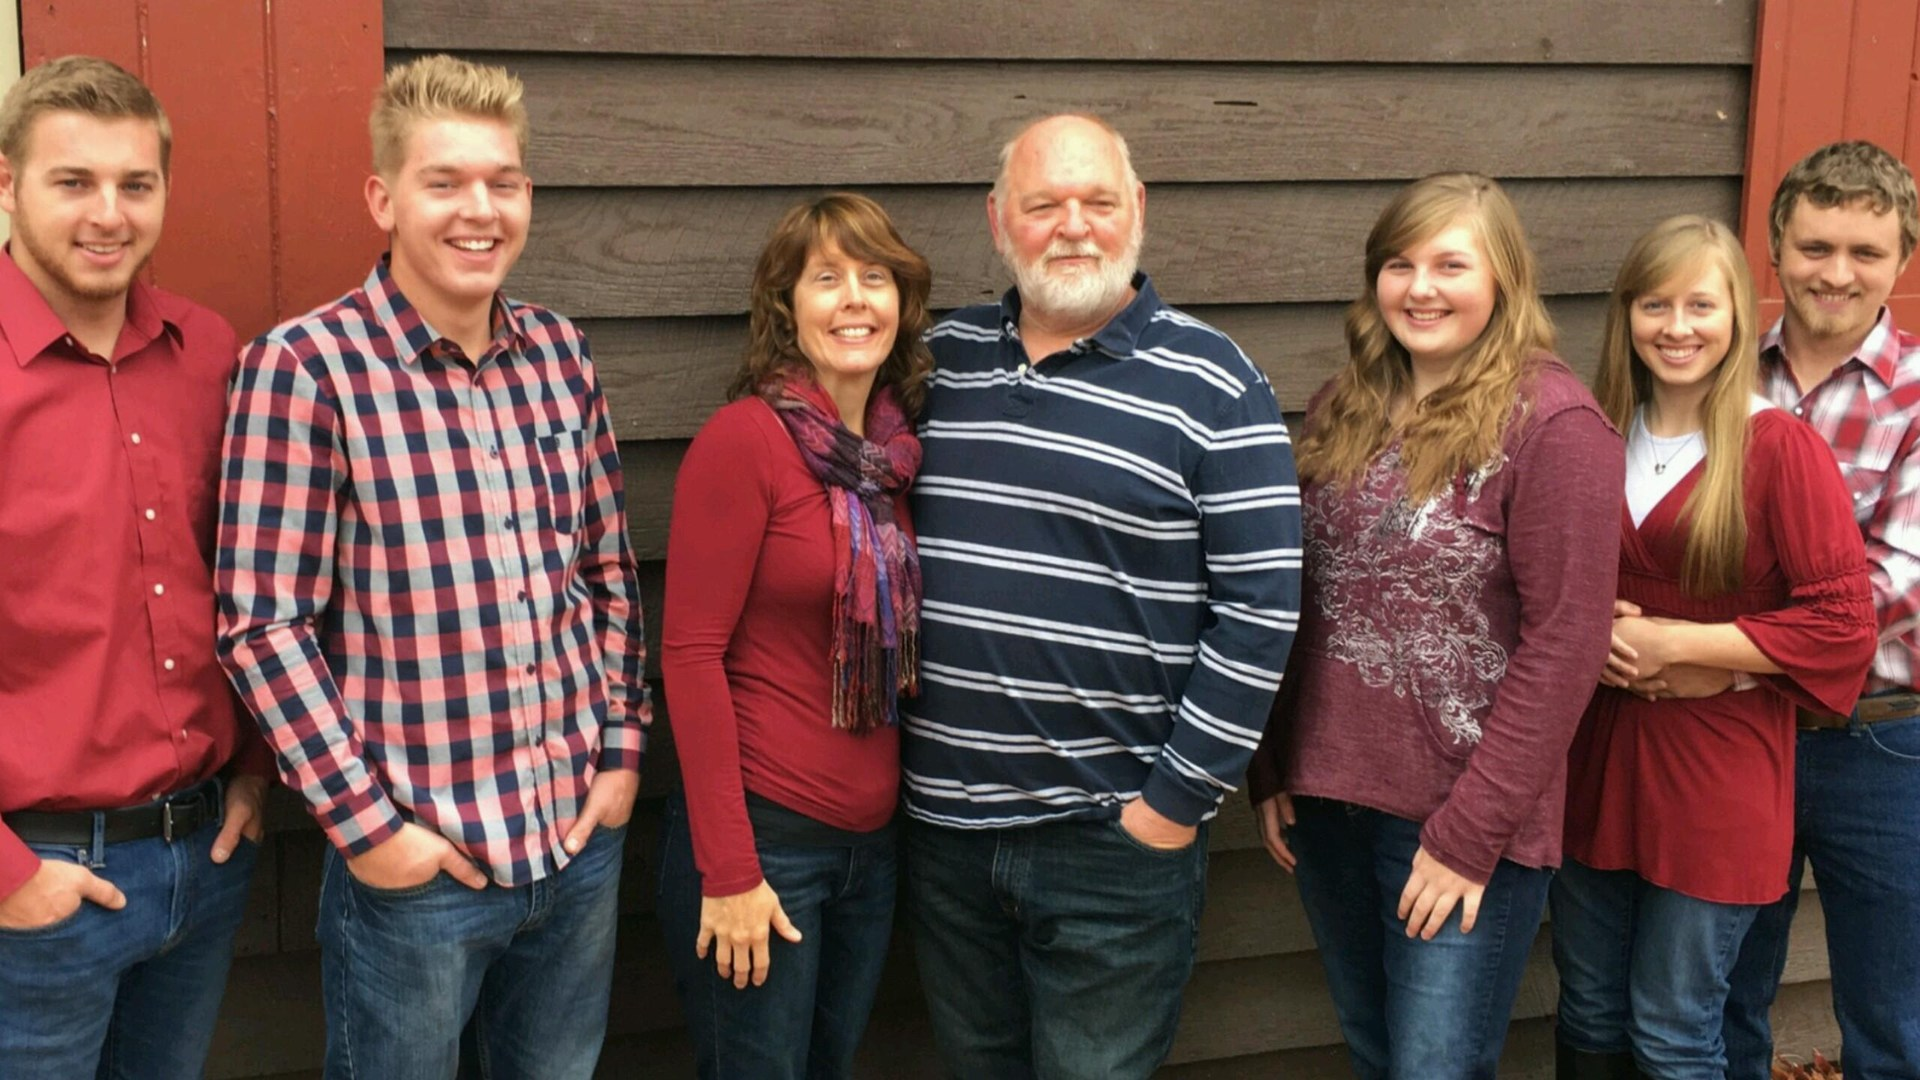 From L to R Son Michael Son Noah Wife Shannon Coach Daughter Leah Daughter Kaley Son in law Mervin